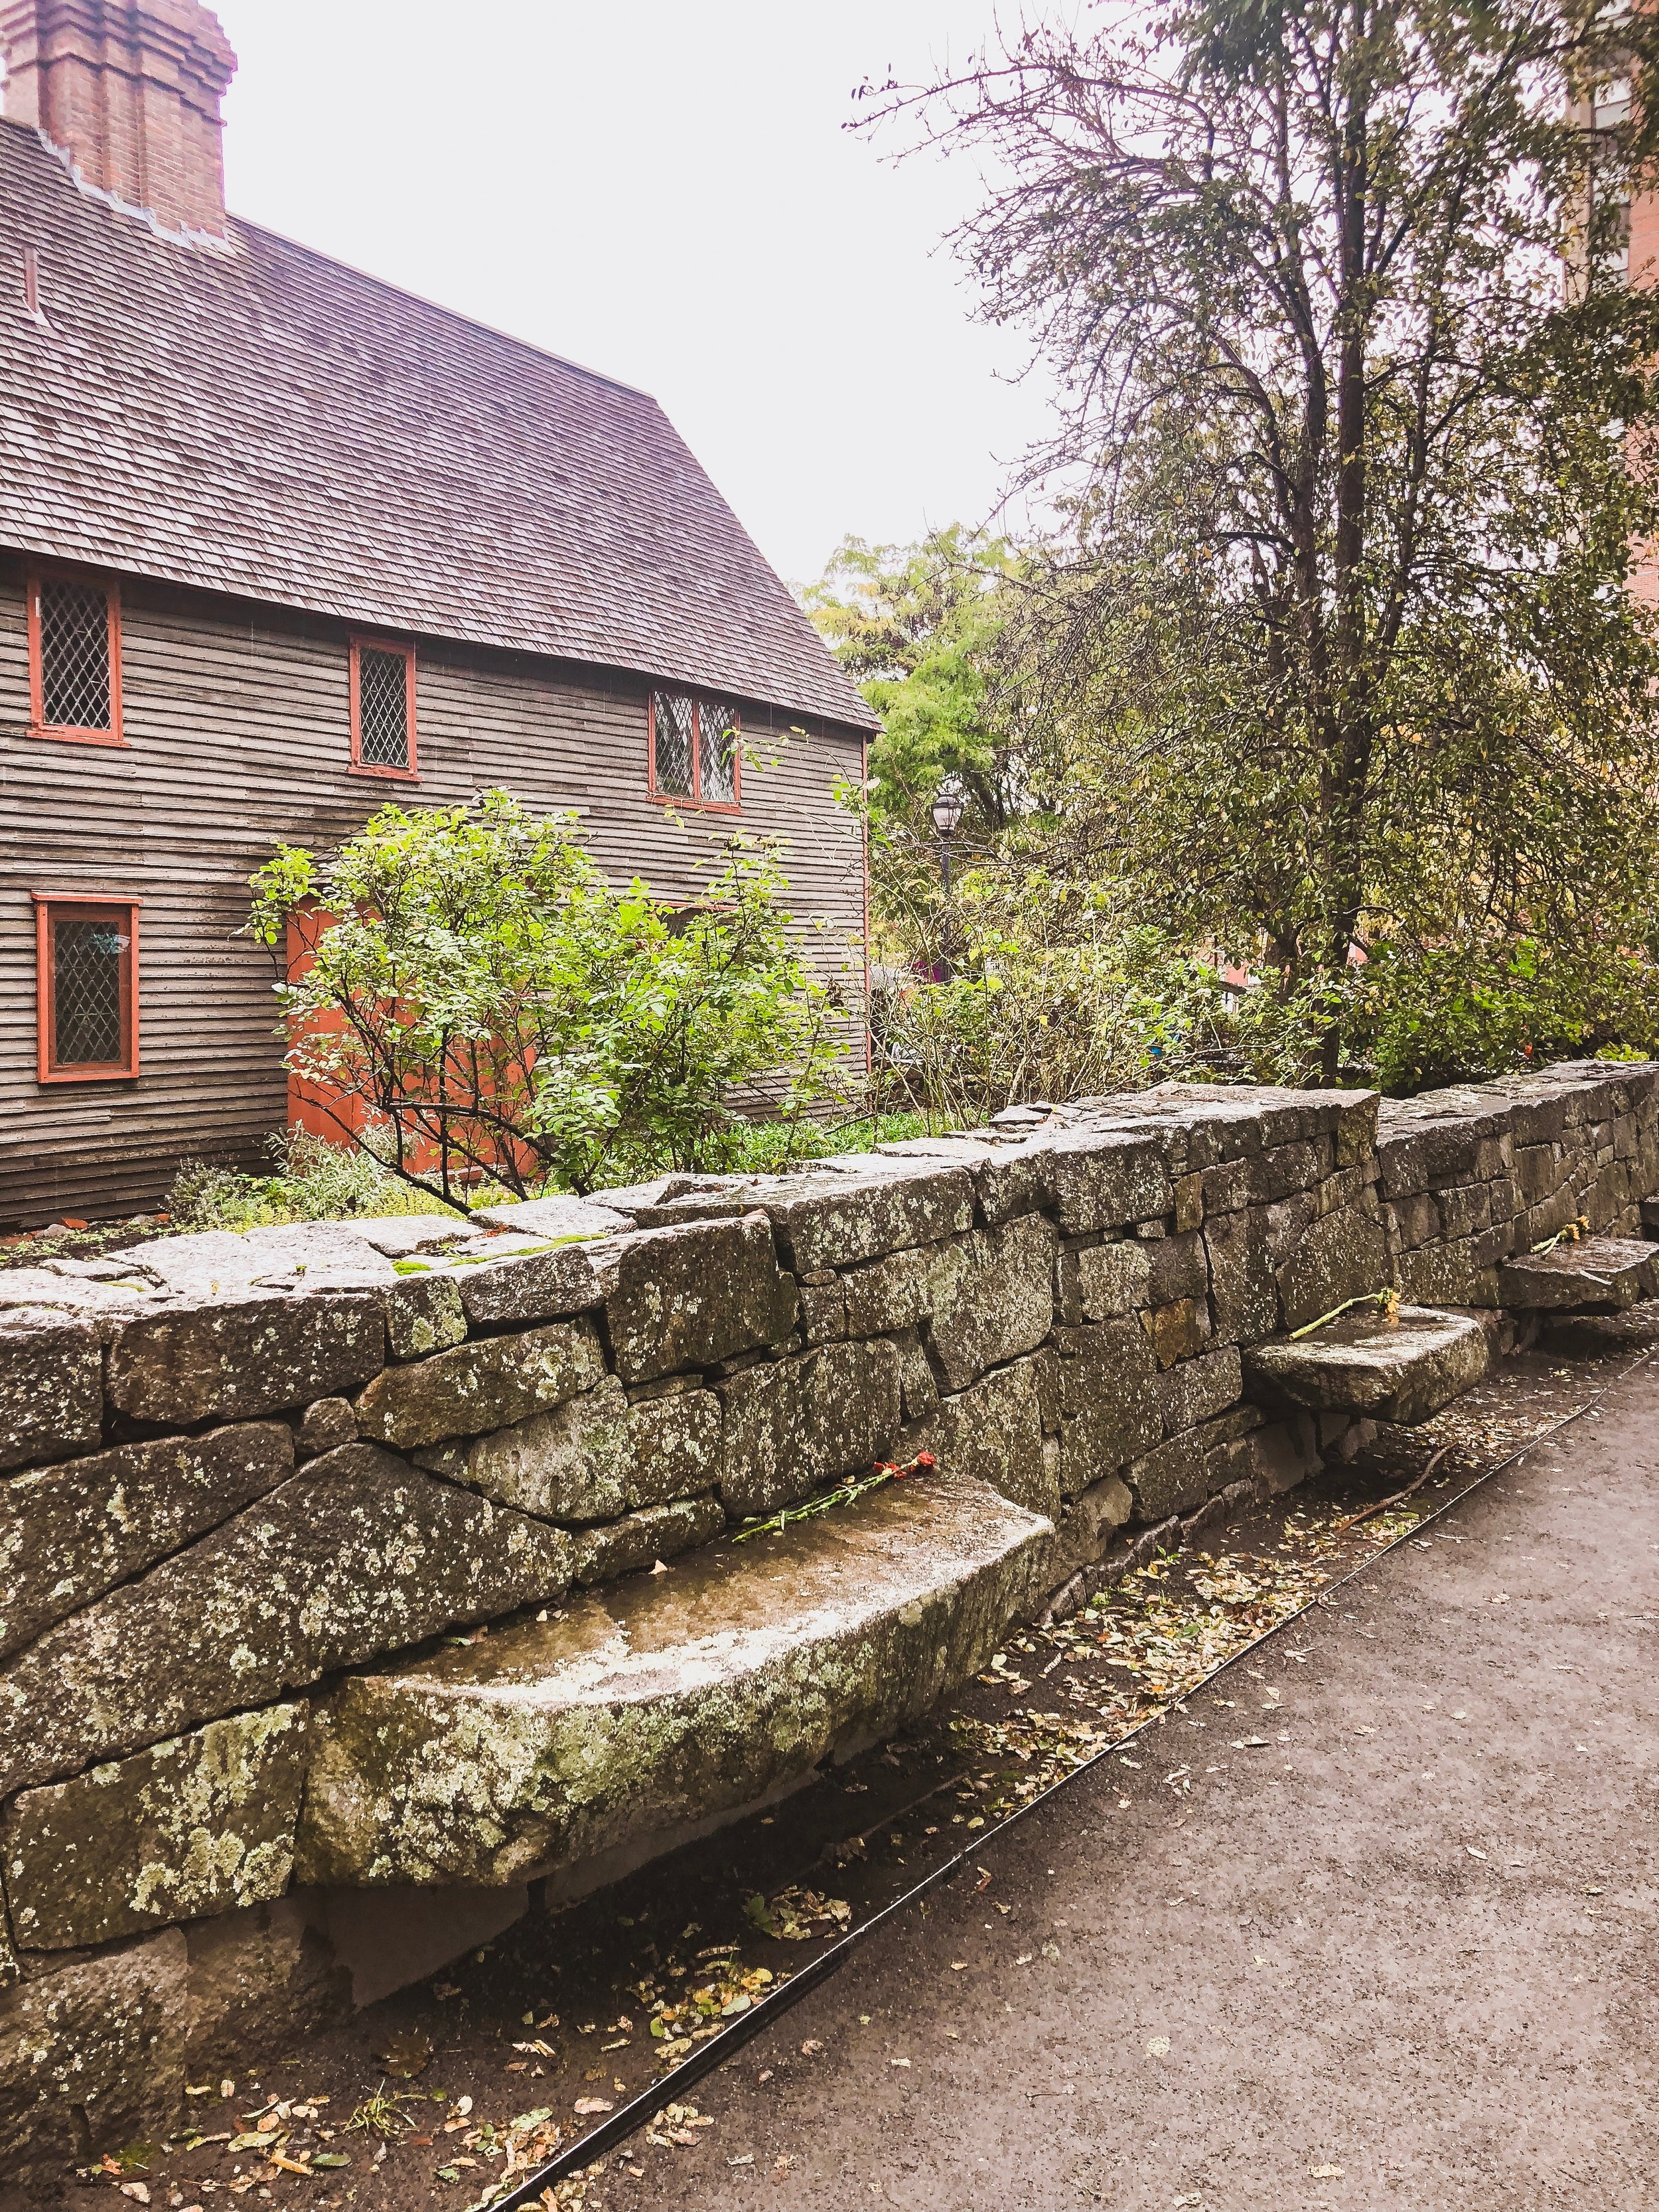 Salem, Massachusetts Travel Guide: Salem Witch Trials Memorial